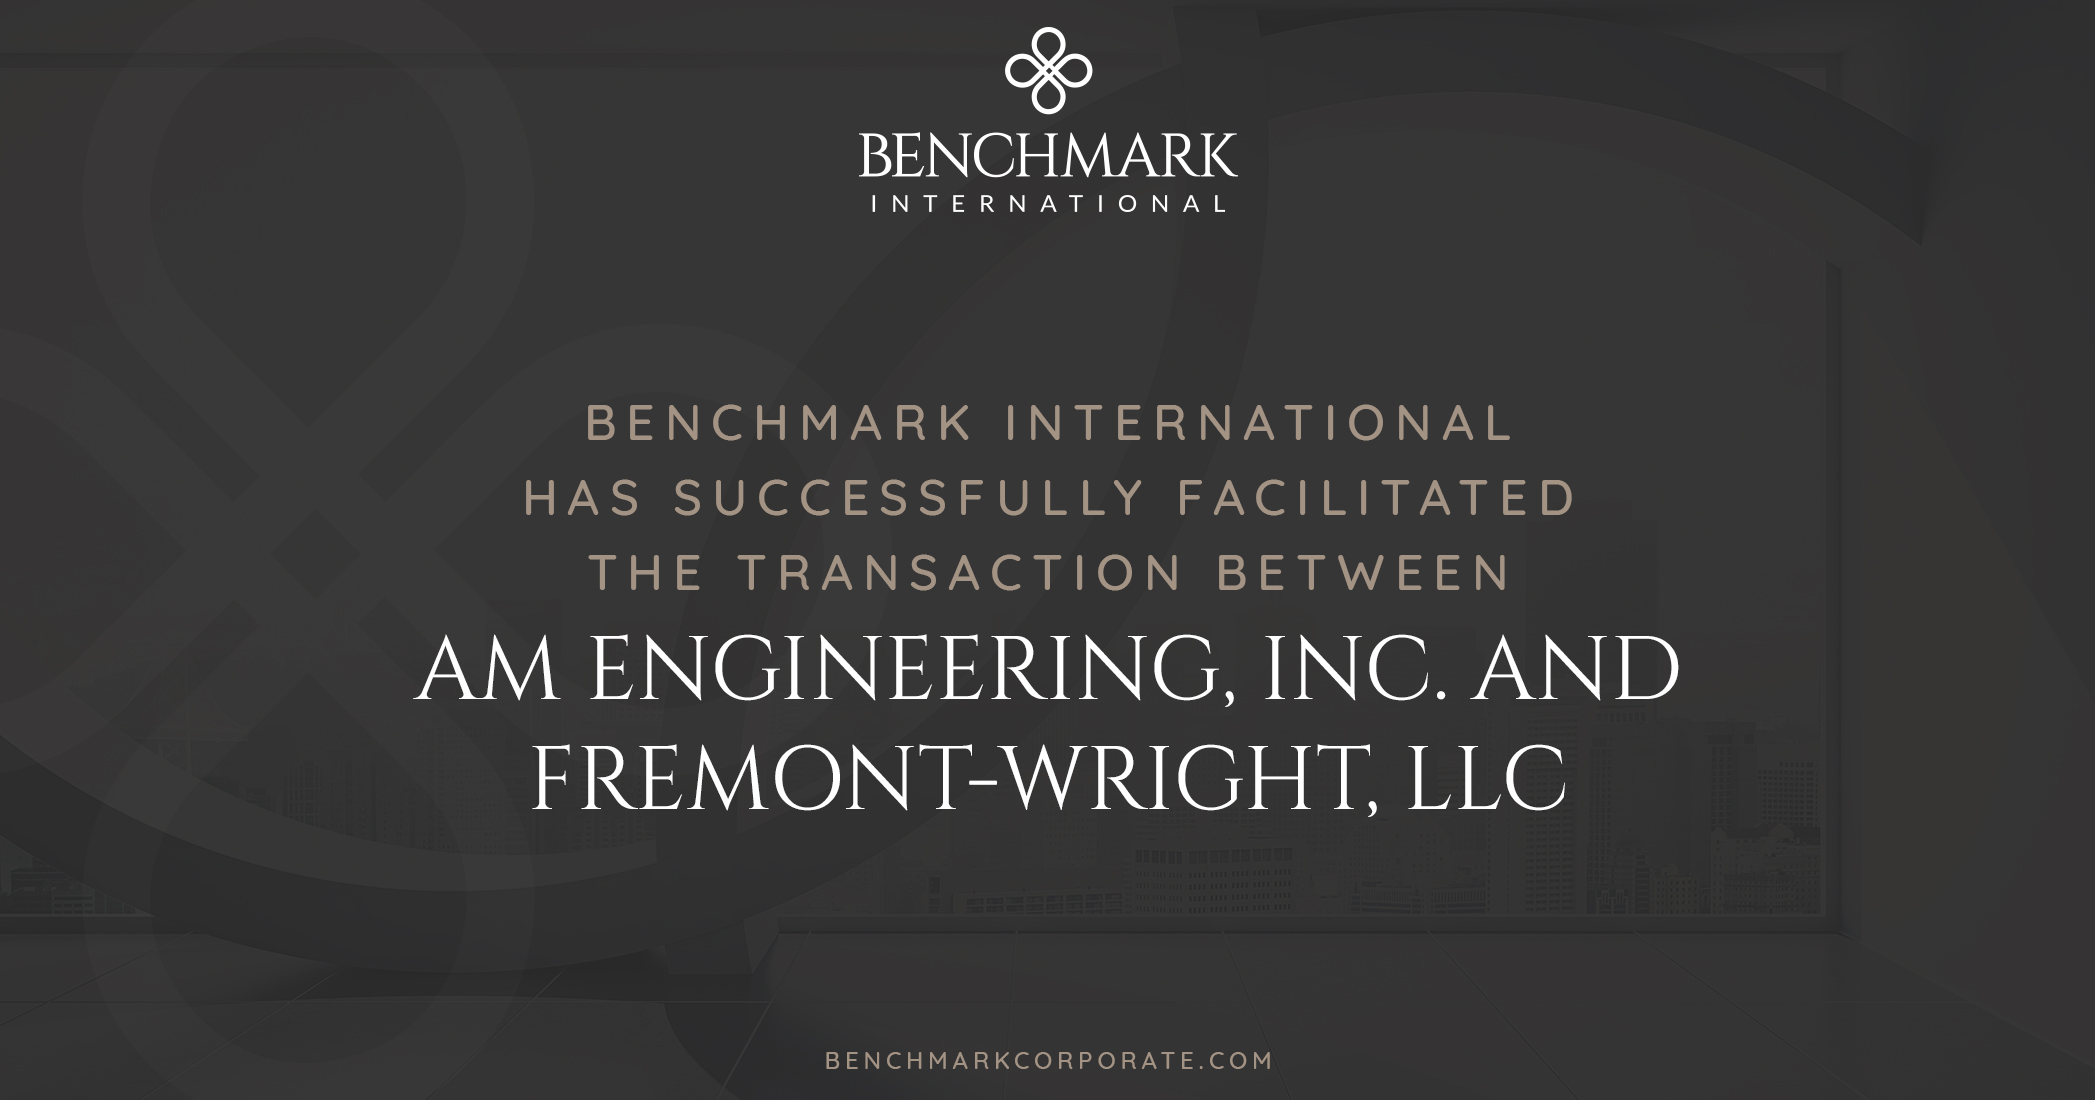 Benchmark International Facilitated The Transaction Of Am Engineering, Inc. To Fremont-Wright, LLC